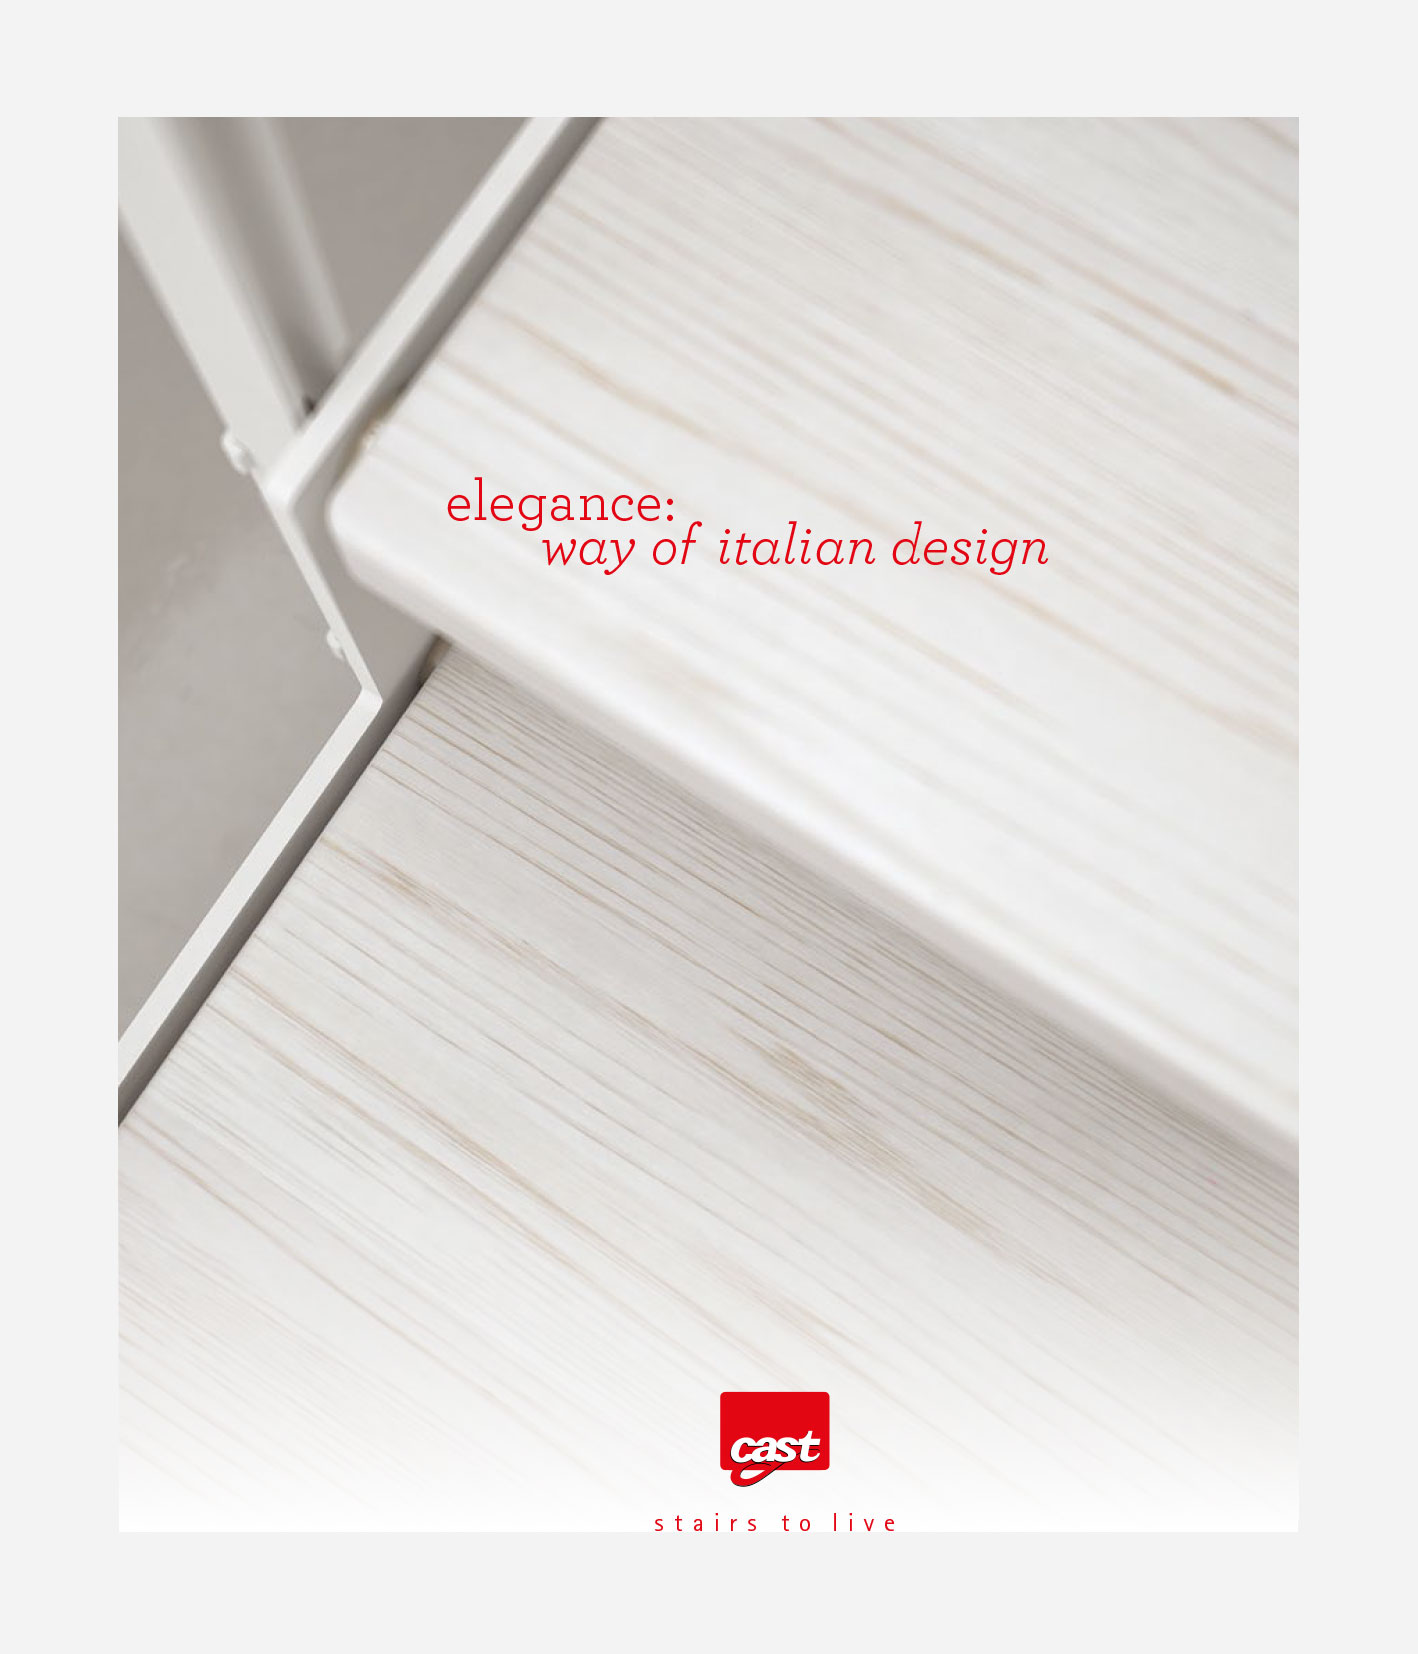 External staircase - Link Iron Outdoor - Elegance Collection by Cast